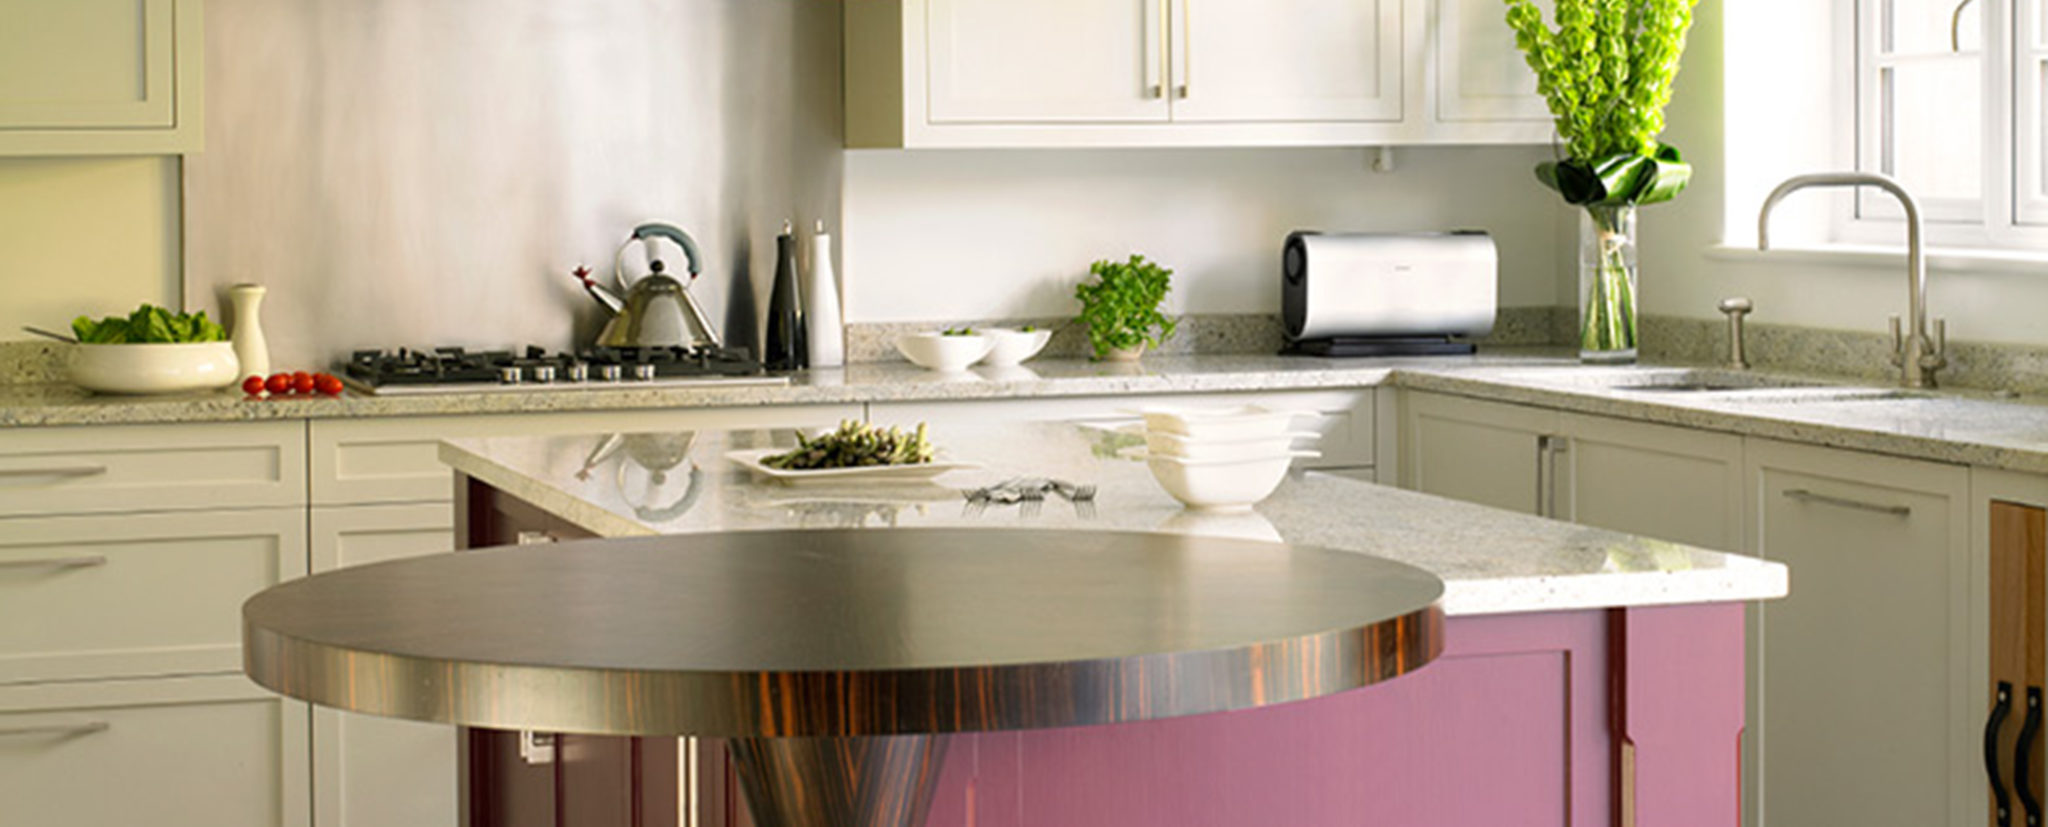 Modern shaker style kitchen with plum red island